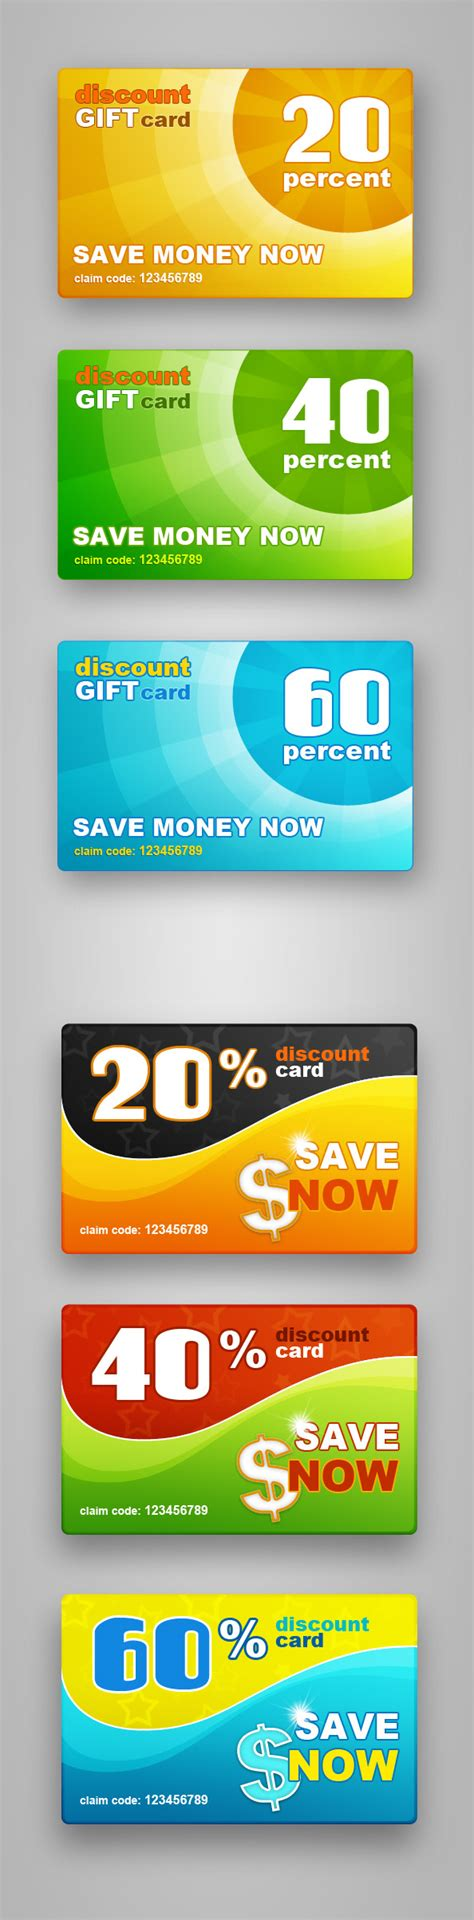 Starbucks Discount Gift Cards - why do i need to make money discount gift cards starbucks make money to take surveys